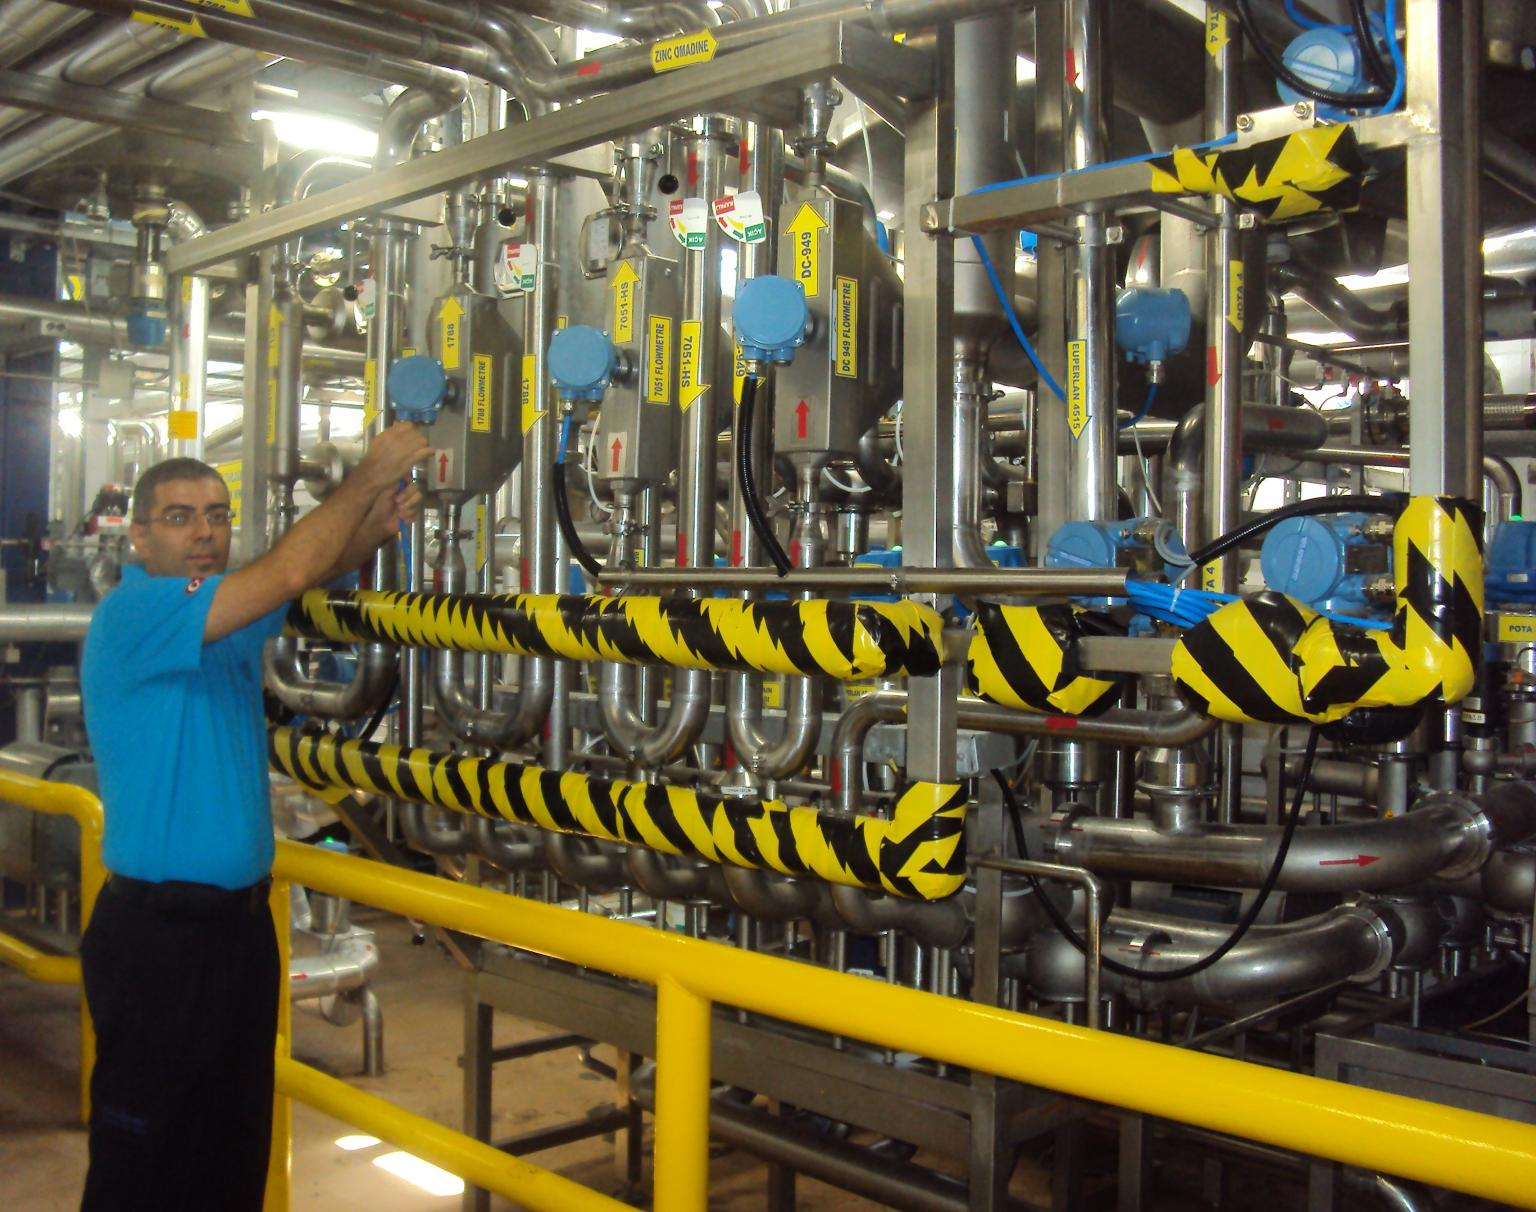 Accurate flow measurement and control has improved product quality and reduced production time at Unilever's Gebze plant